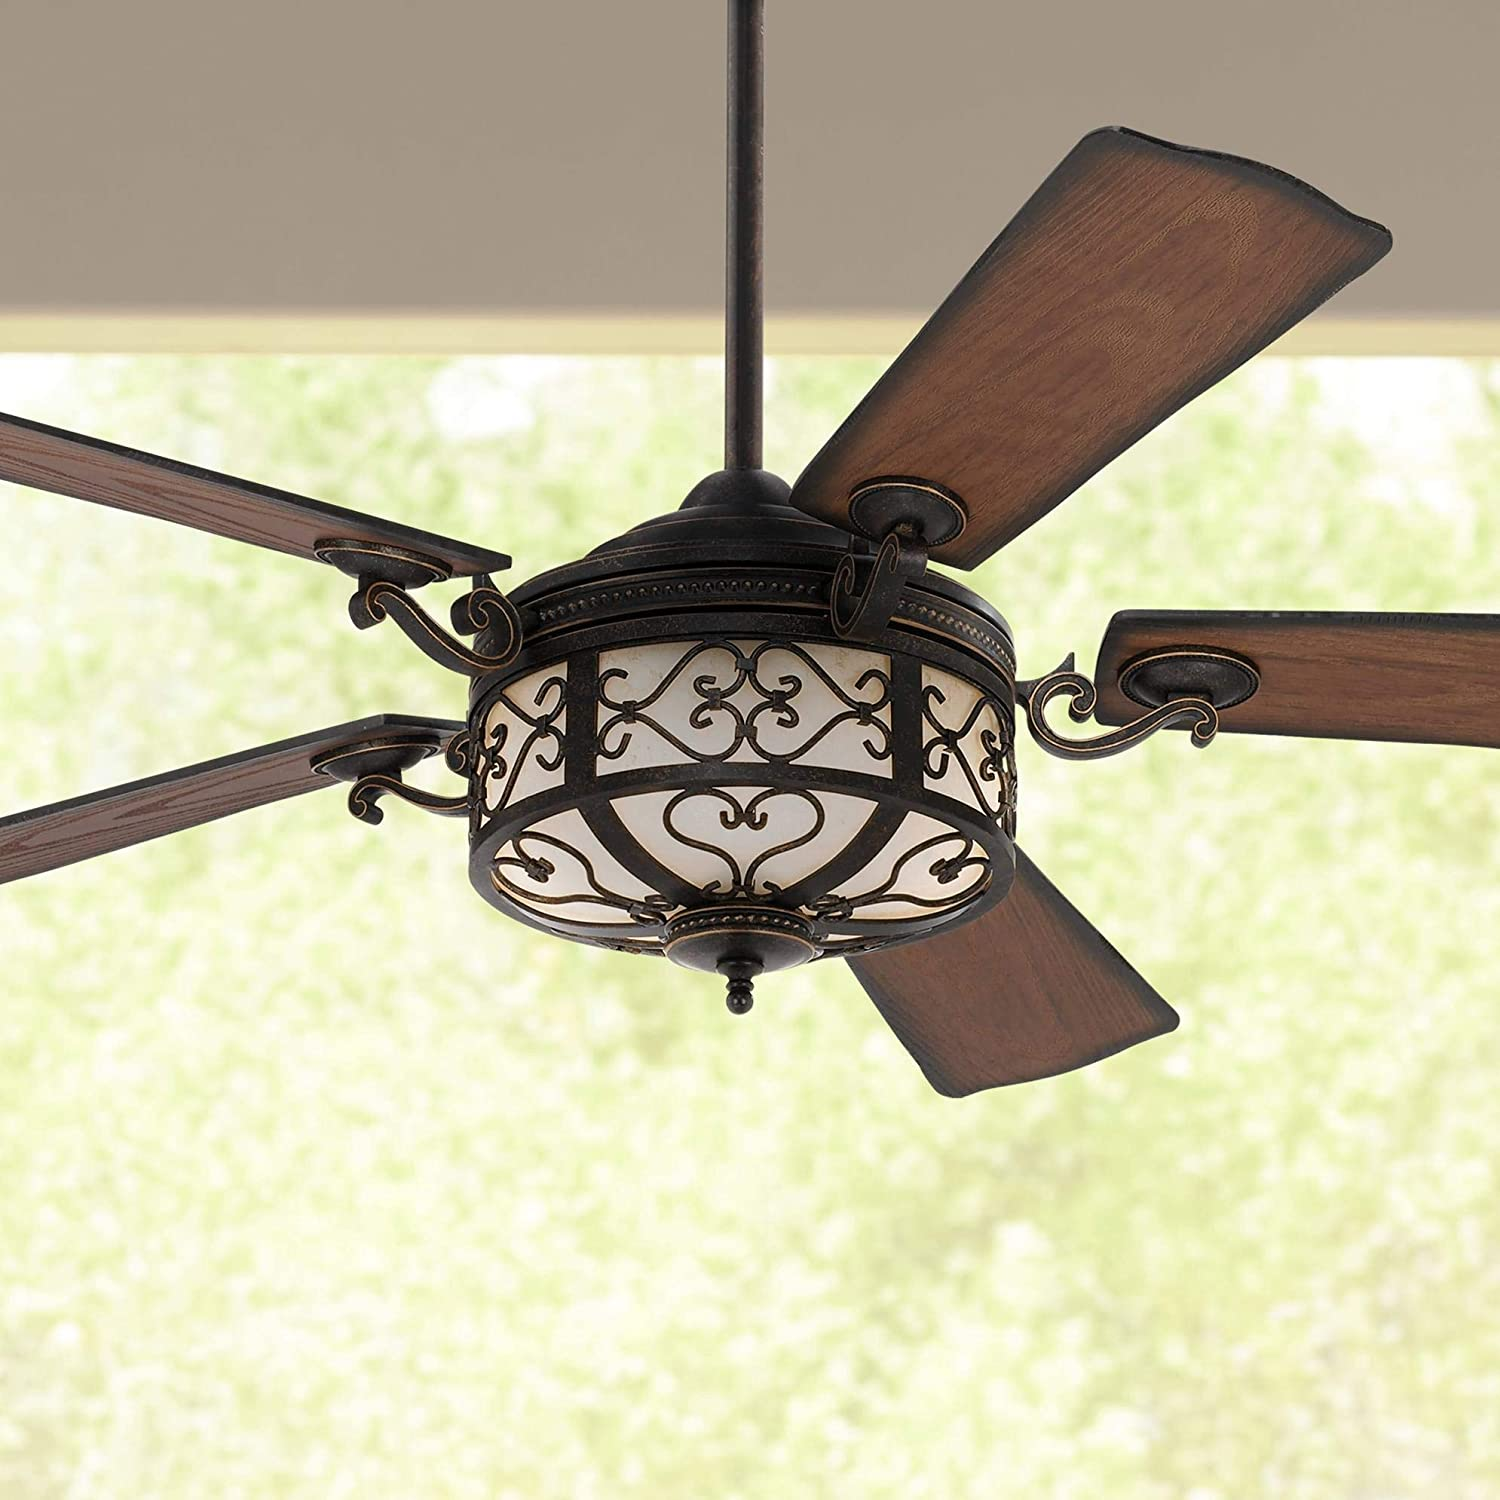 """54"""" Hermitage Rustic Outdoor Ceiling Fan with Light LED Dimmable Remote Control Golden Forged Reversible Distressed Walnut Blades Damp Rated for Patio Porch - Casa Vieja"""